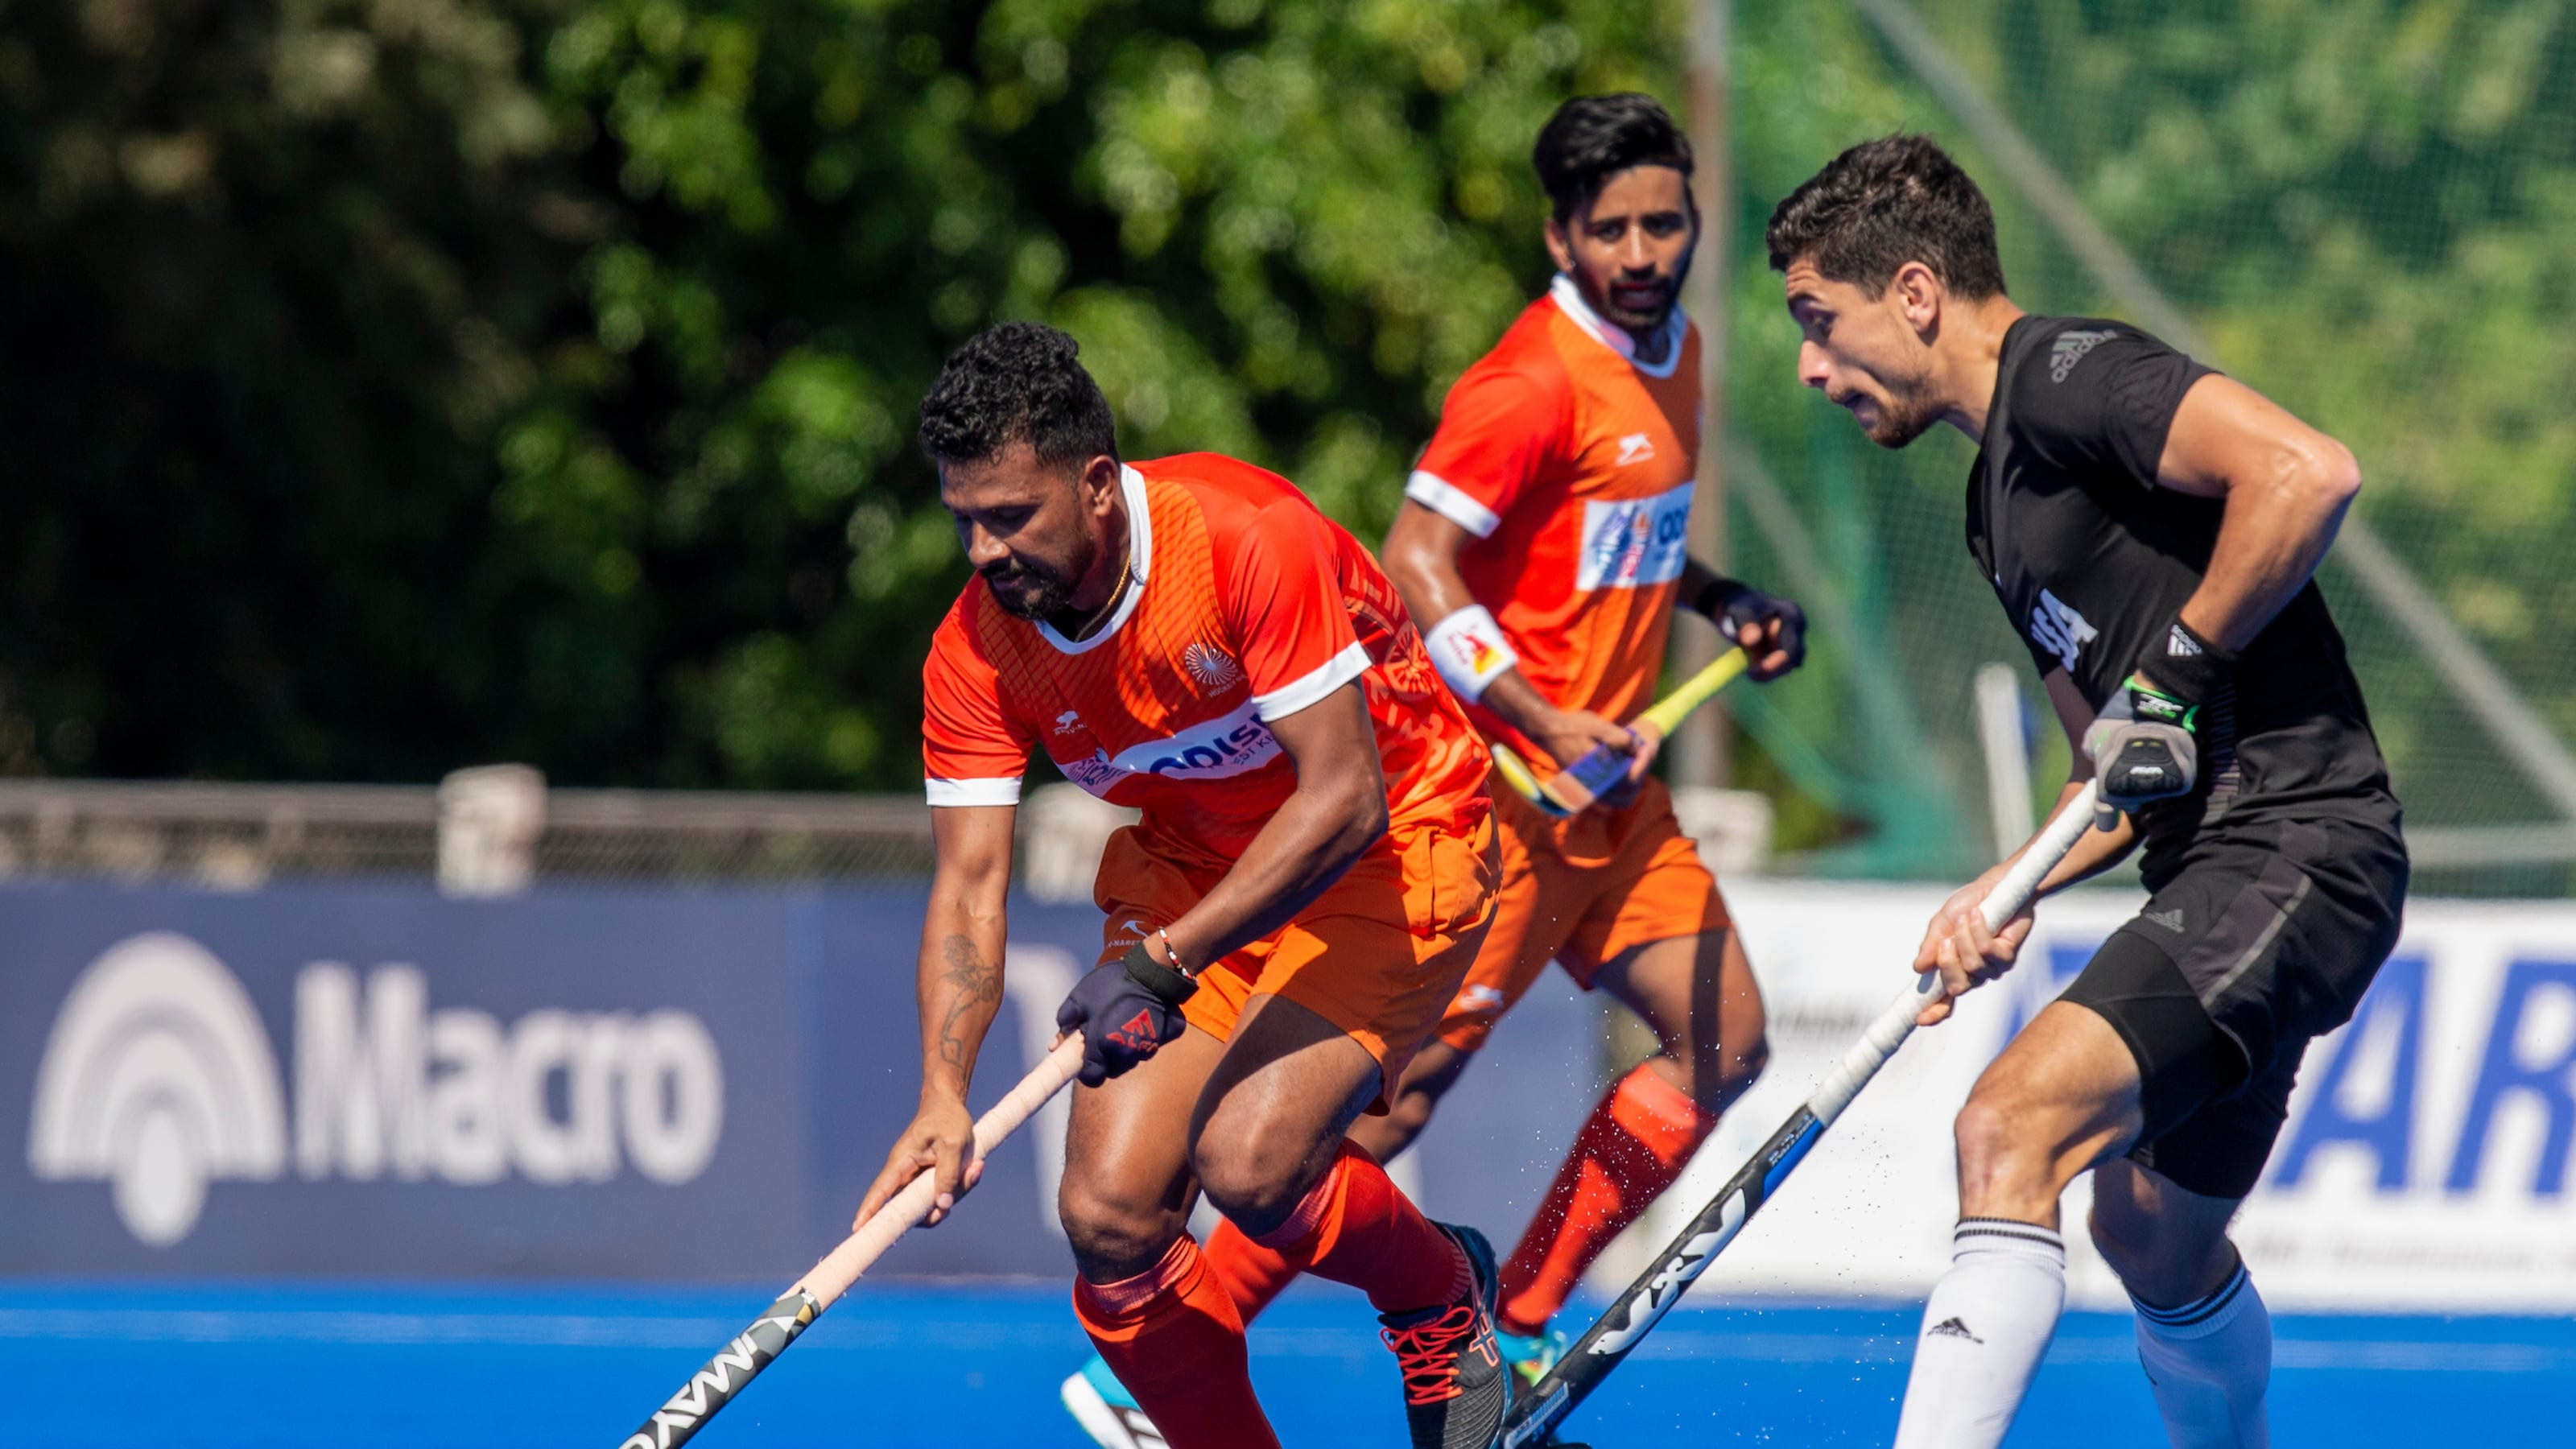 India beat Argentina 4-2 in fourth and final practice hockey match at Buenos Aires